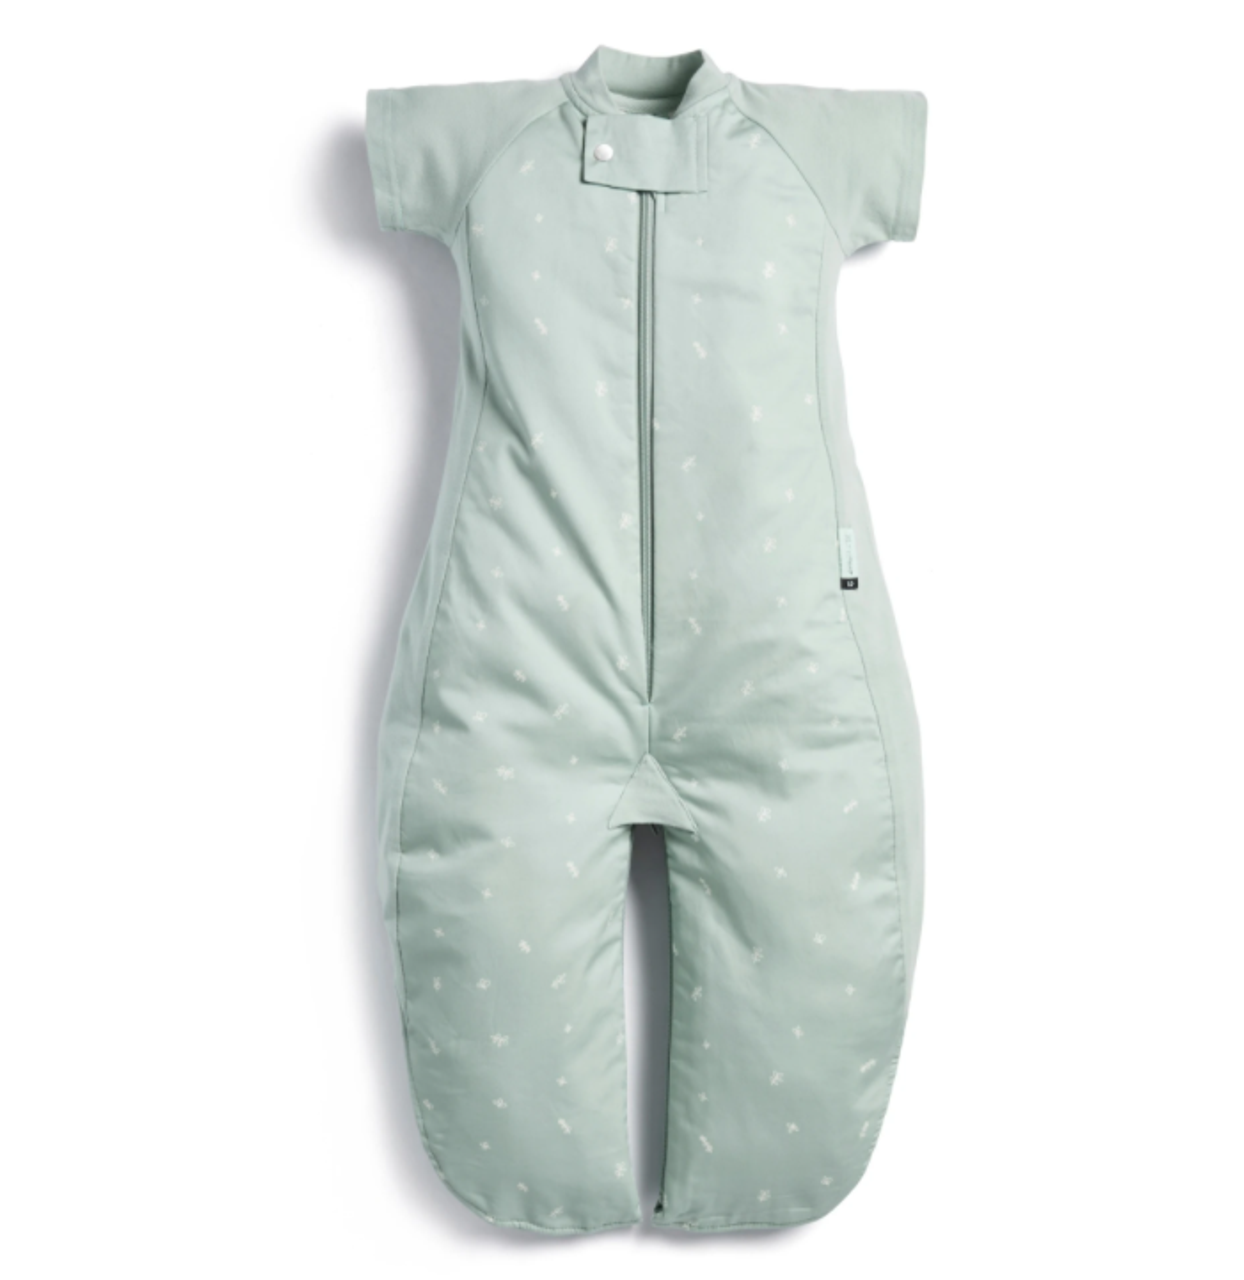 Ergopouch Sleepsuit Bag 1.0 Tog 8-24 Months at Baby Barn Discounts Ergopouch award-winning Sleep Suit Bag converts from a Sleeping Bag to a Sleep Suit with legs using the 4-way zippers.